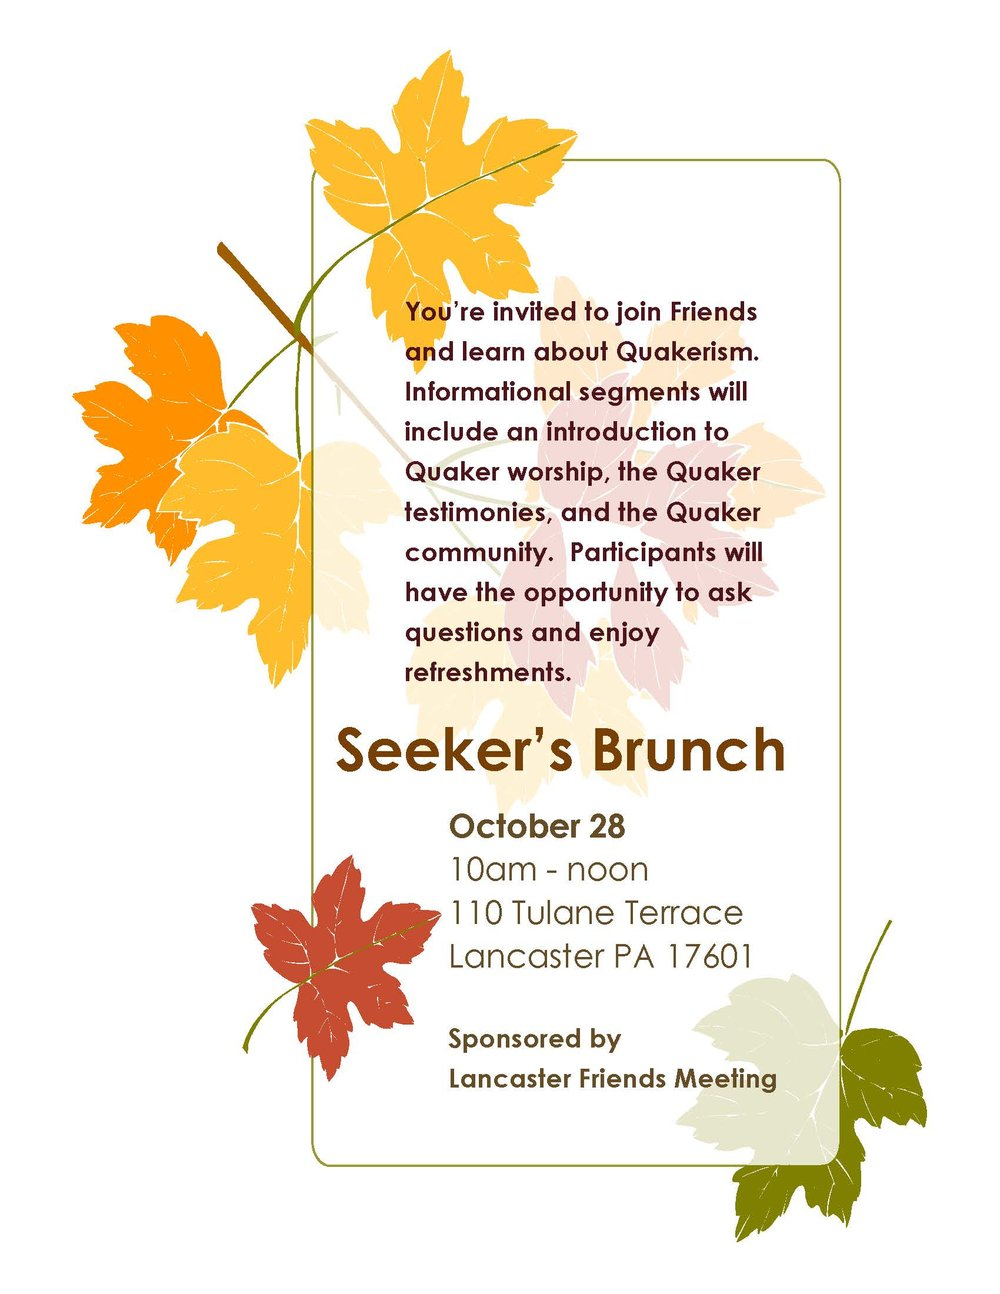 seeker's brunch flyer.jpg